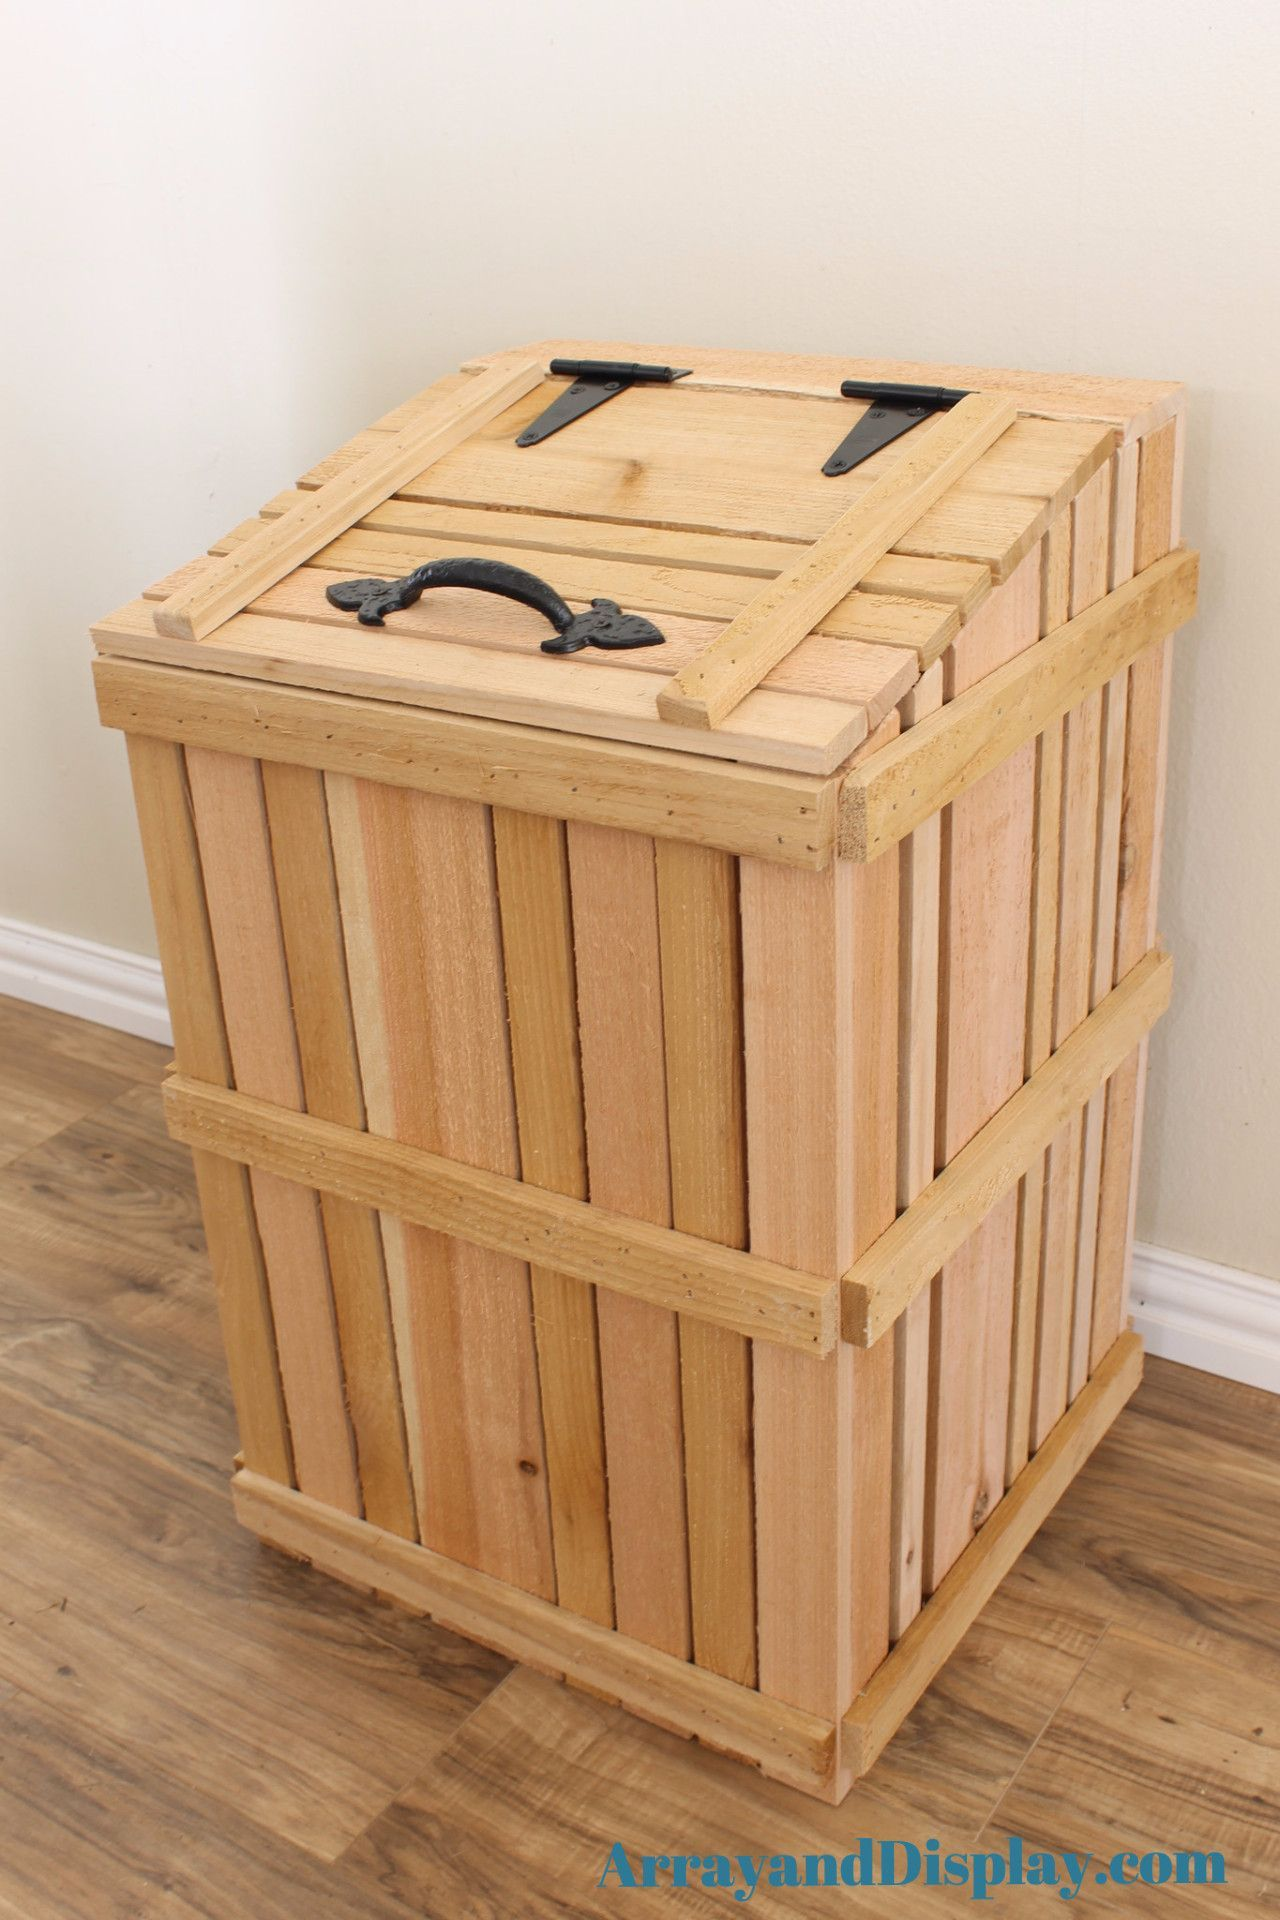 Handcrafted Rustic Kitchen Trash Can Cover Made Of Hand Split Cedar With Trashcan Included